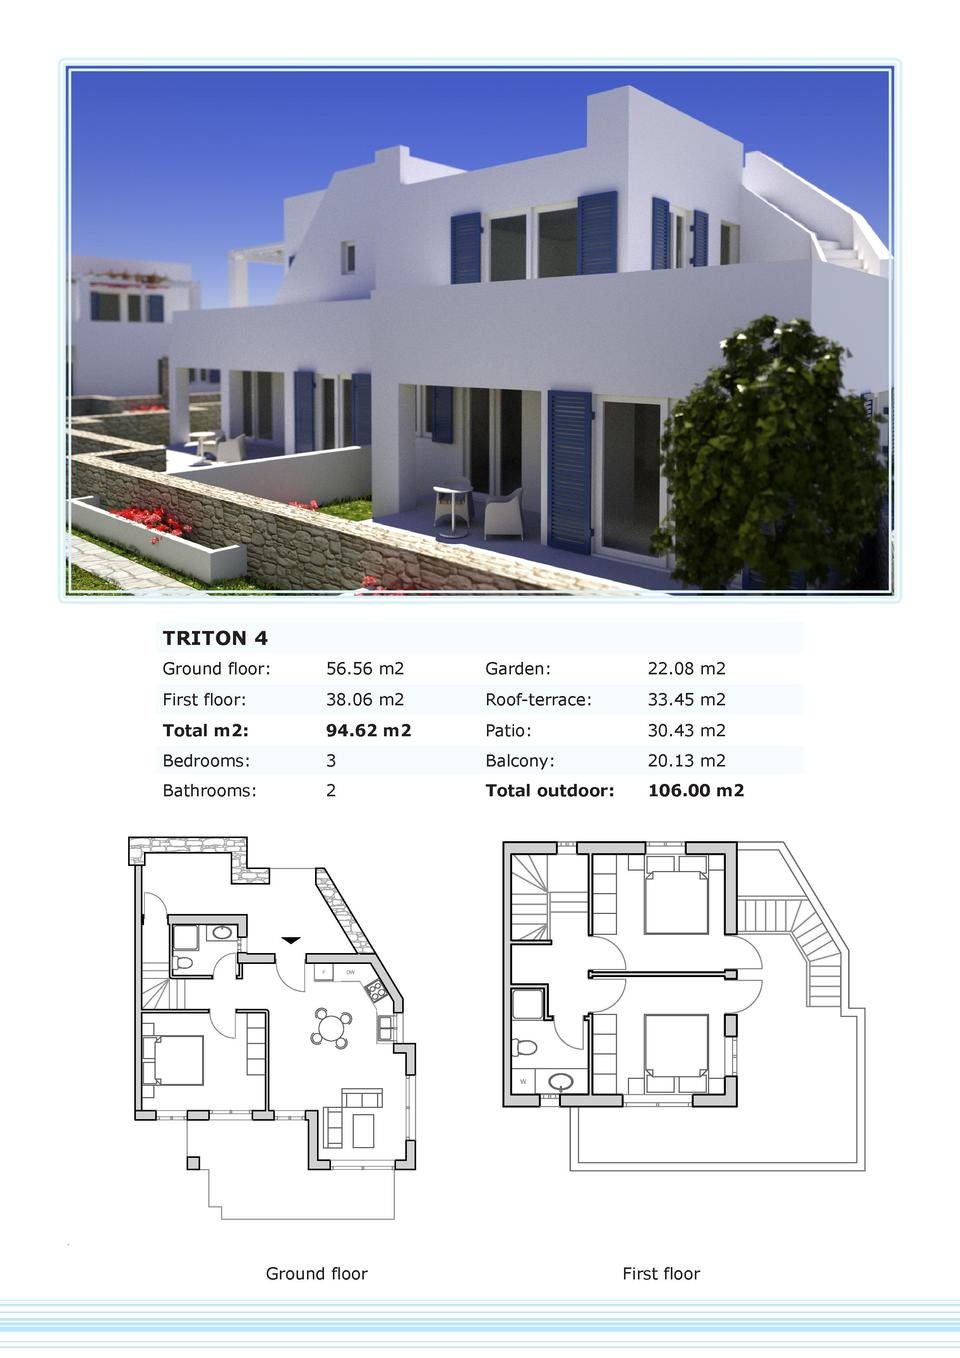 TRITON 4 Ground floor   56.56 m2  Garden   22.08 m2  First floor   38.06 m2  Roof-terrace   33.45 m2  Total m2   94.62 m2 ...